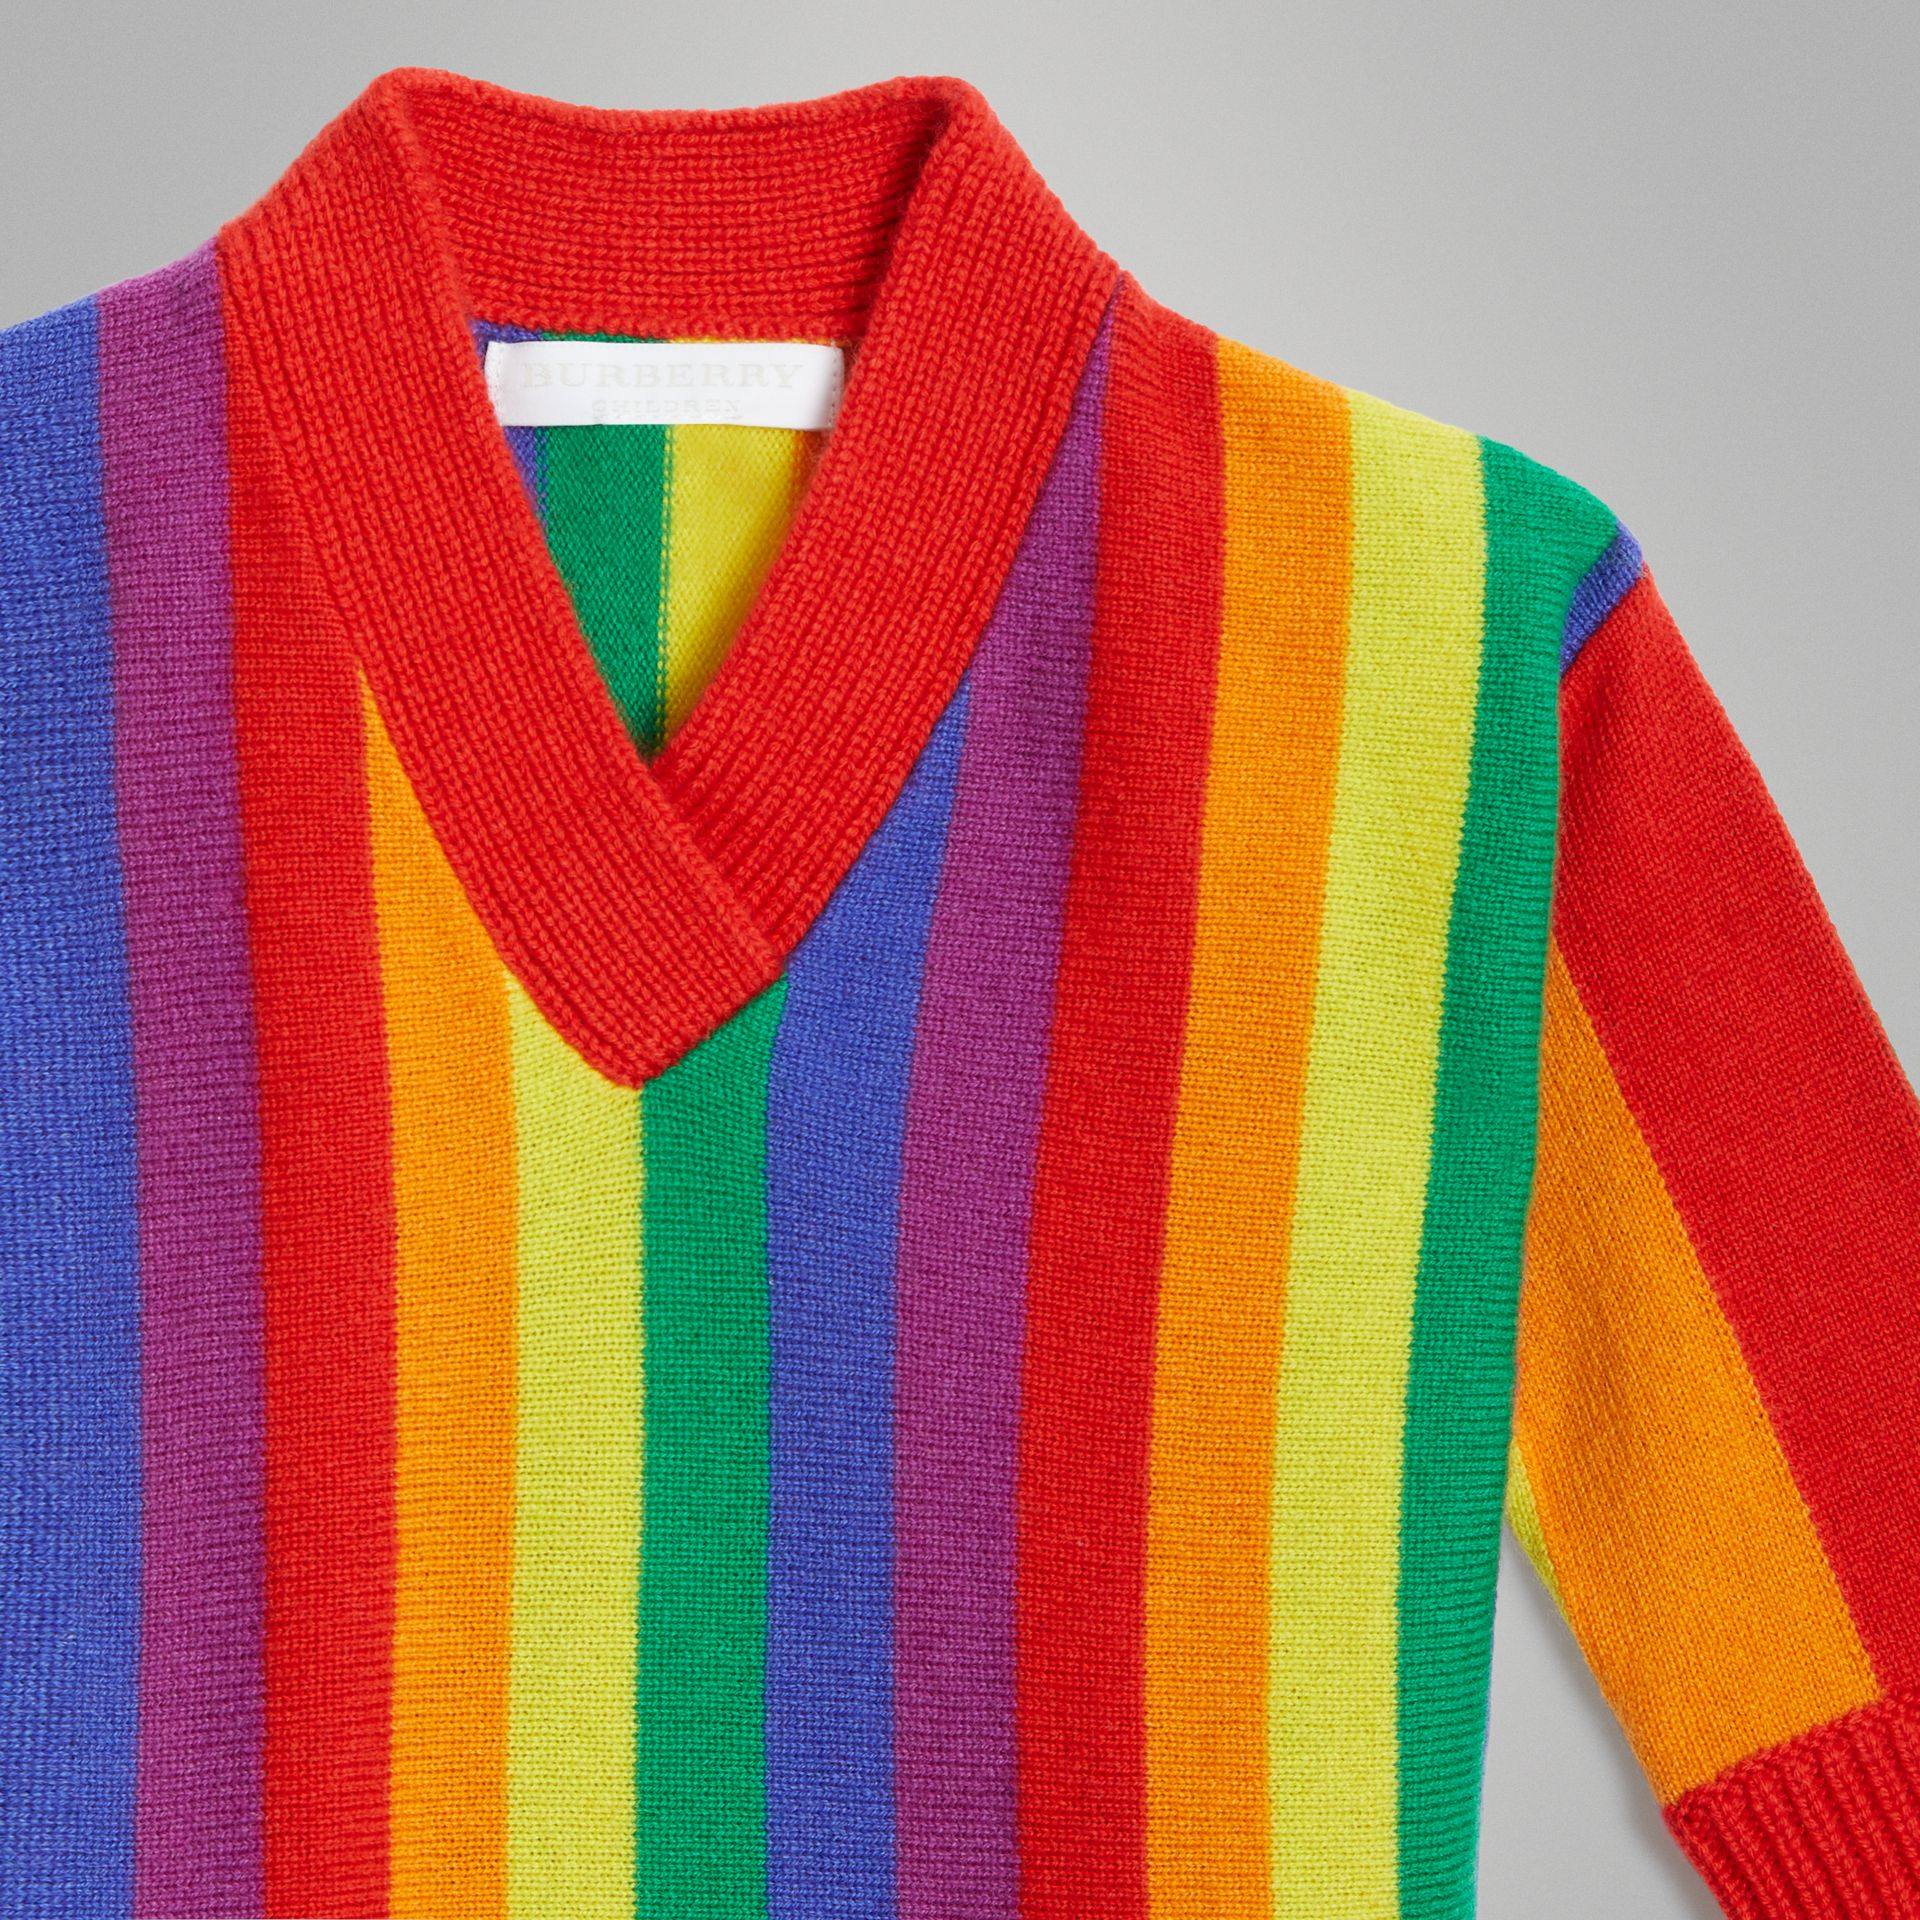 Striped Wool Cashmere Sweater Dress in Multicolour - Children | Burberry - gallery image 4